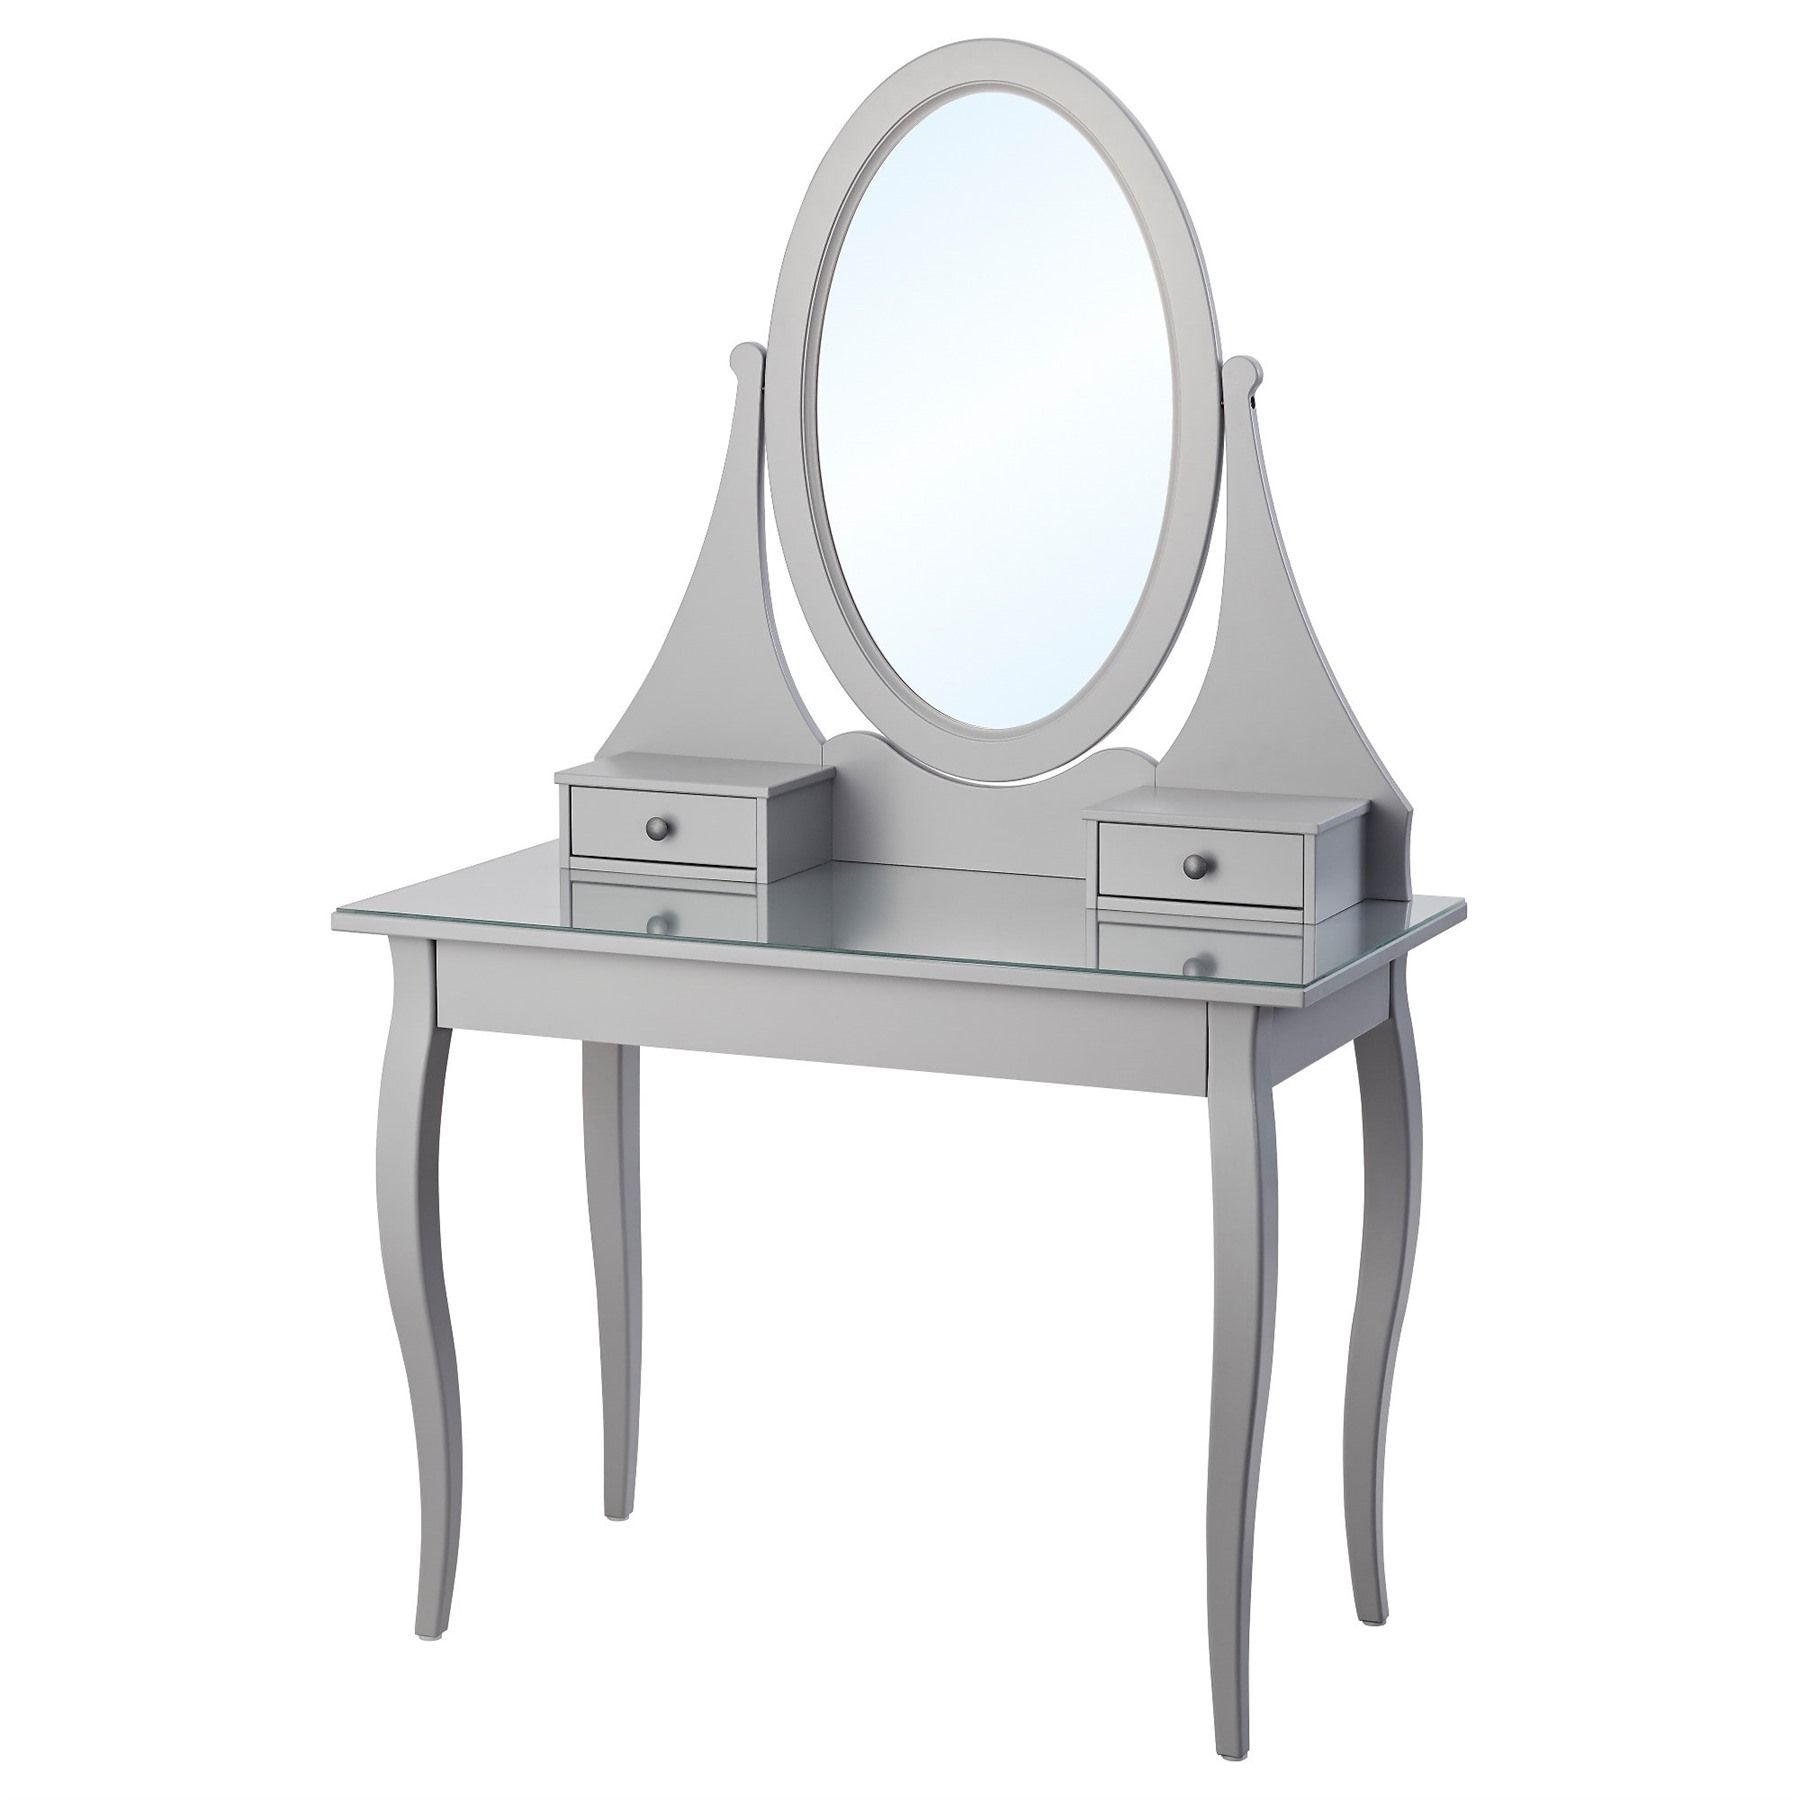 Table Ideas26 Exceptional Makeup Table Ideas Saleprice 36 Dressing Table Mirror Ikea Dressing Table White Dressing Tables